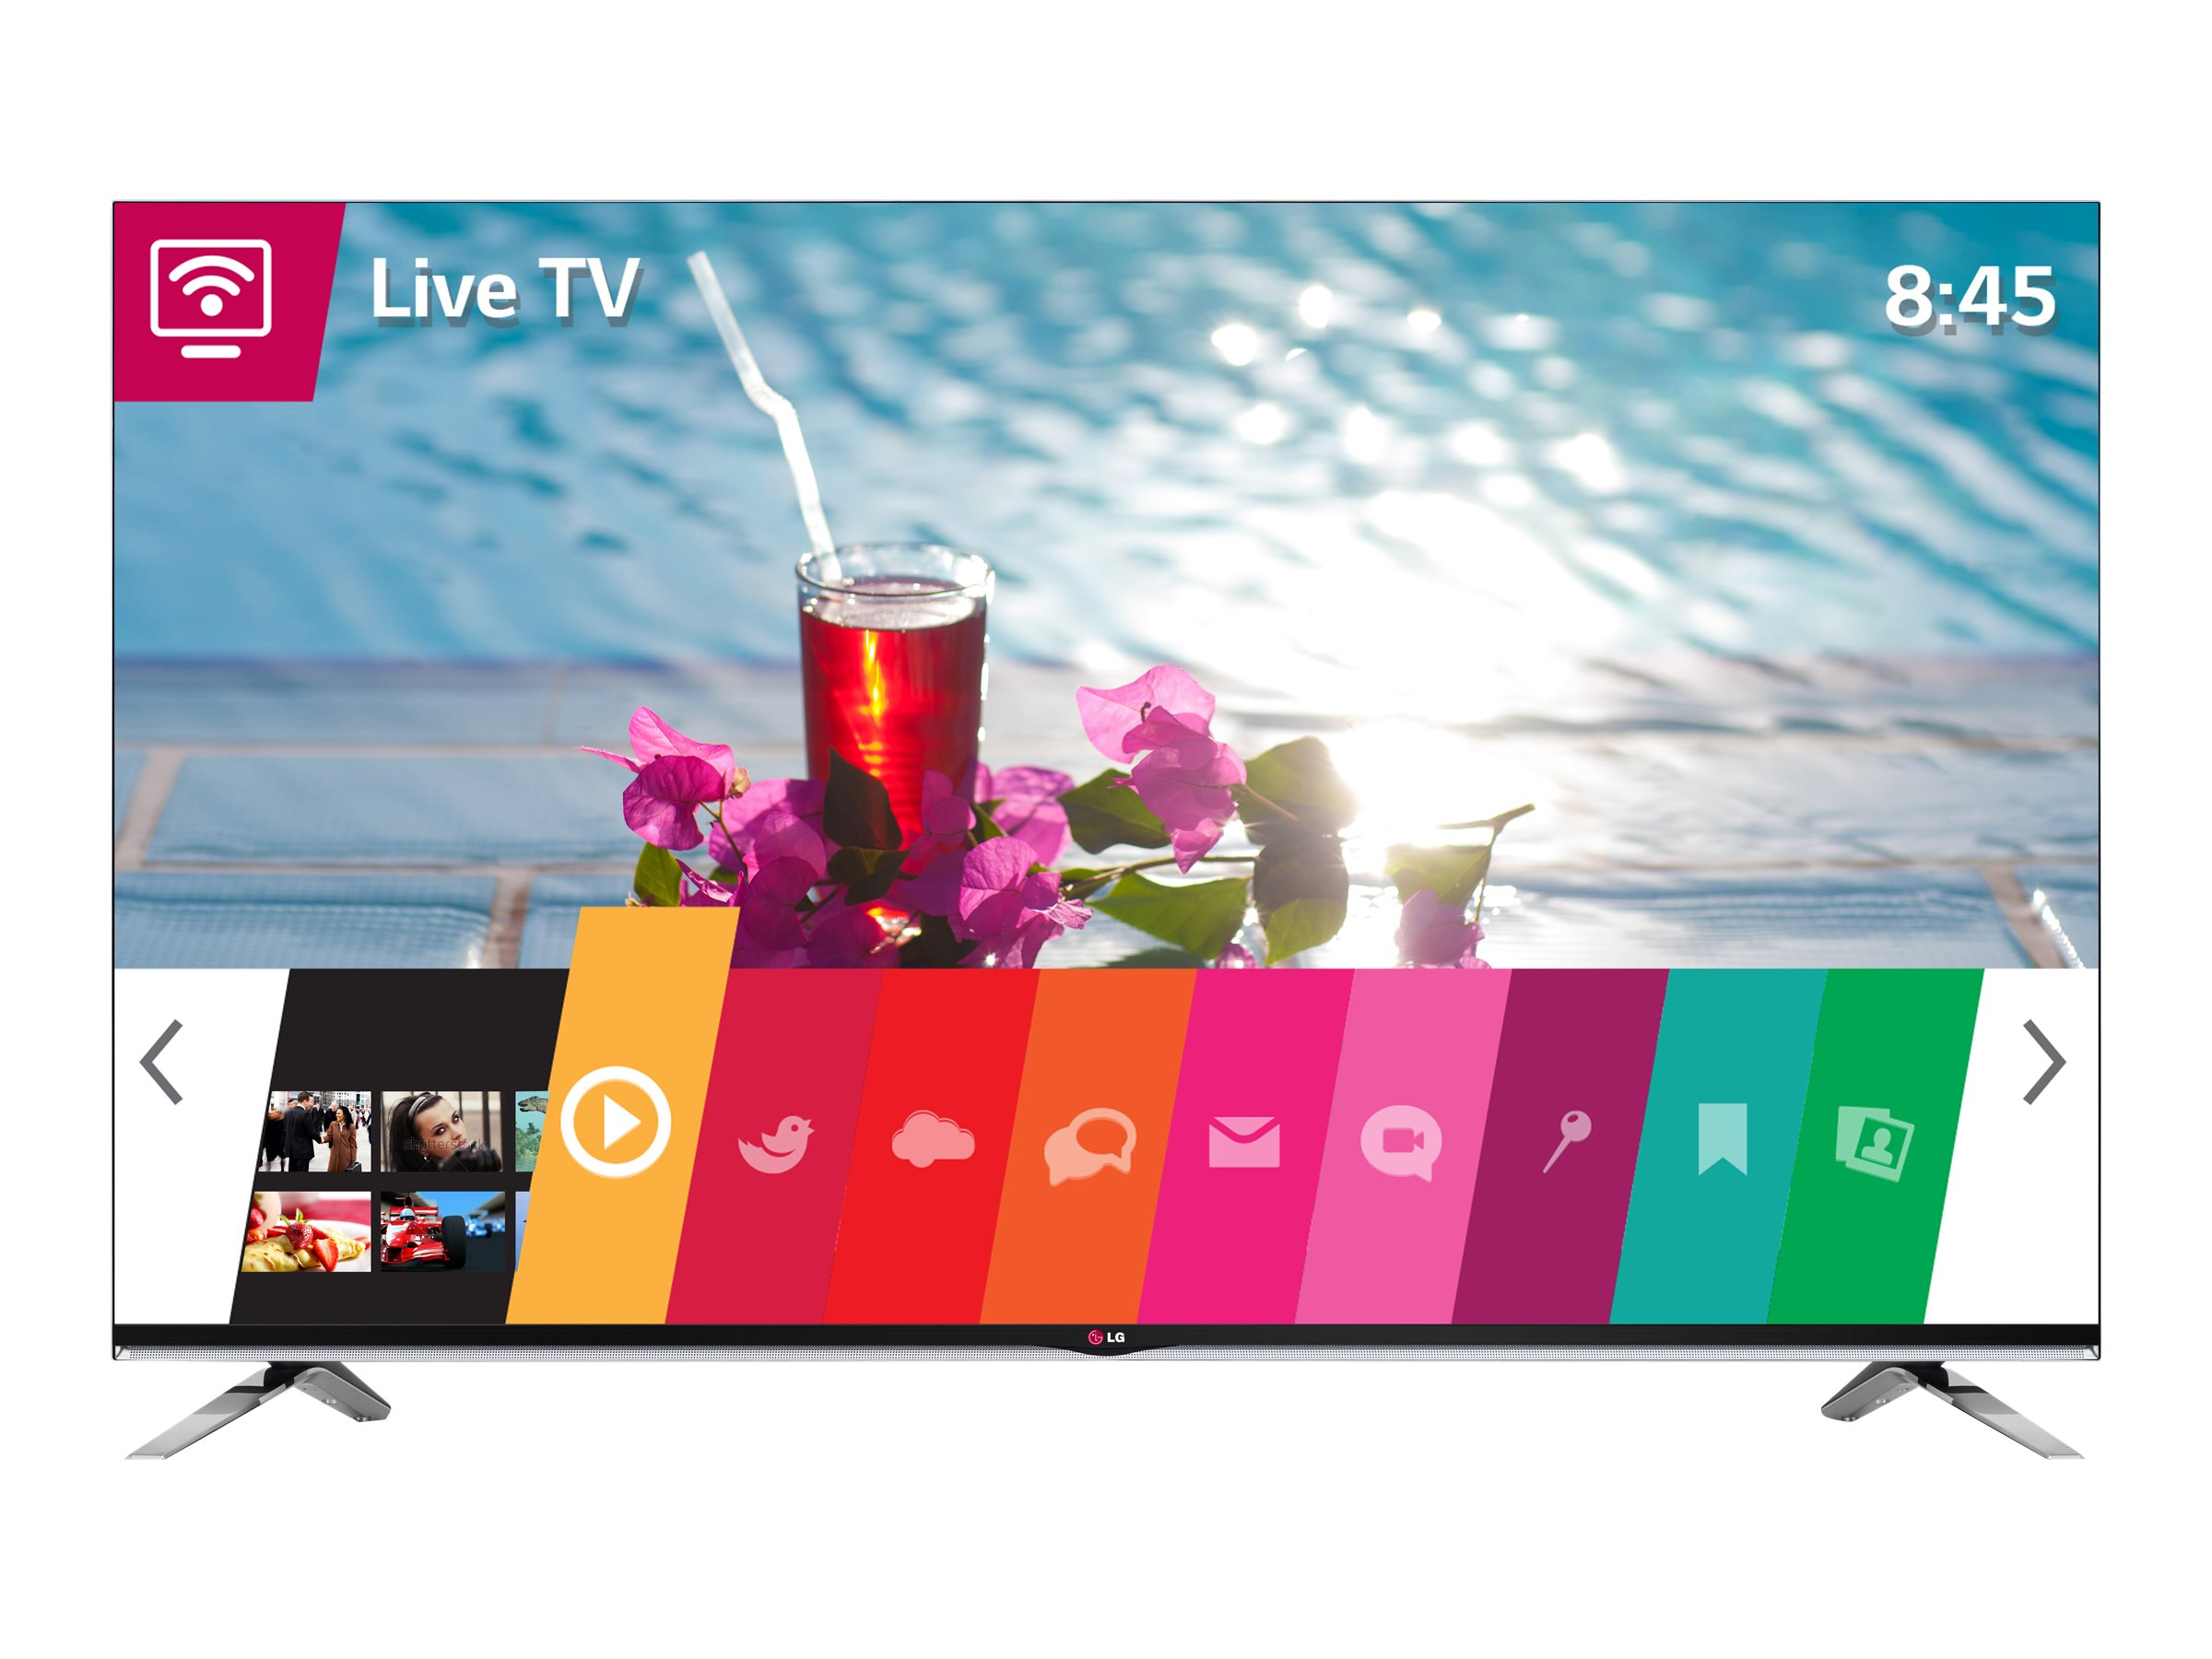 LG 47 LY970H Full HD LED-LCD Commercial TV, Black, 47LY970H